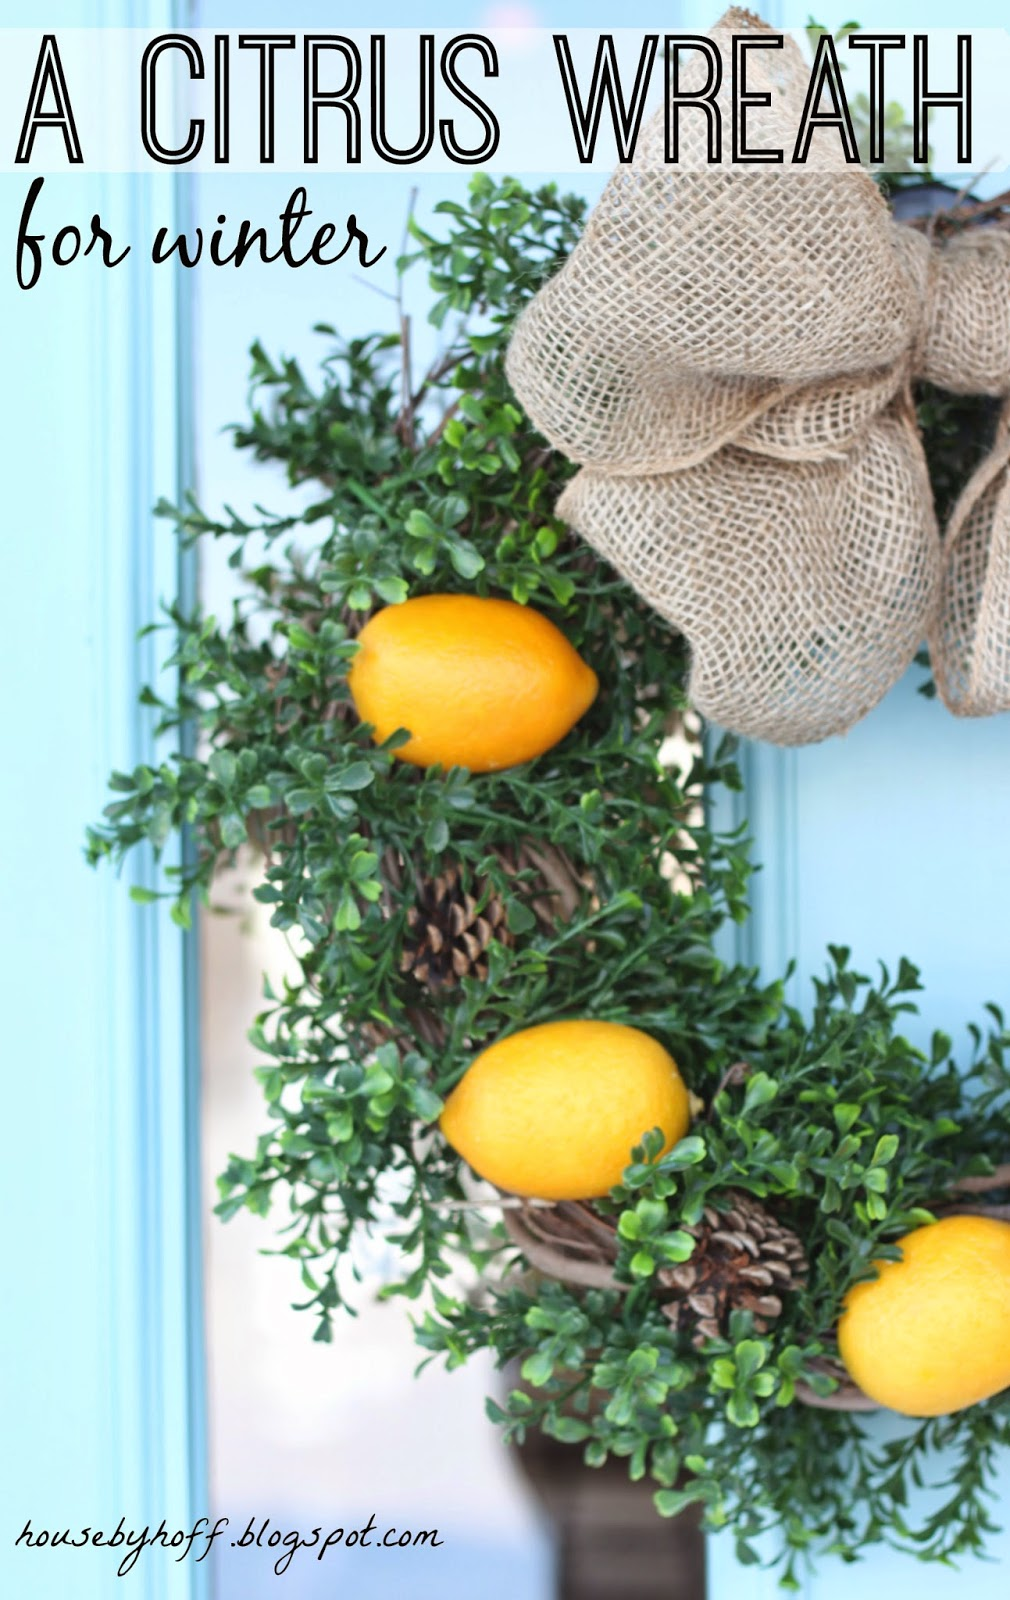 A citrus wreath for winter poster.